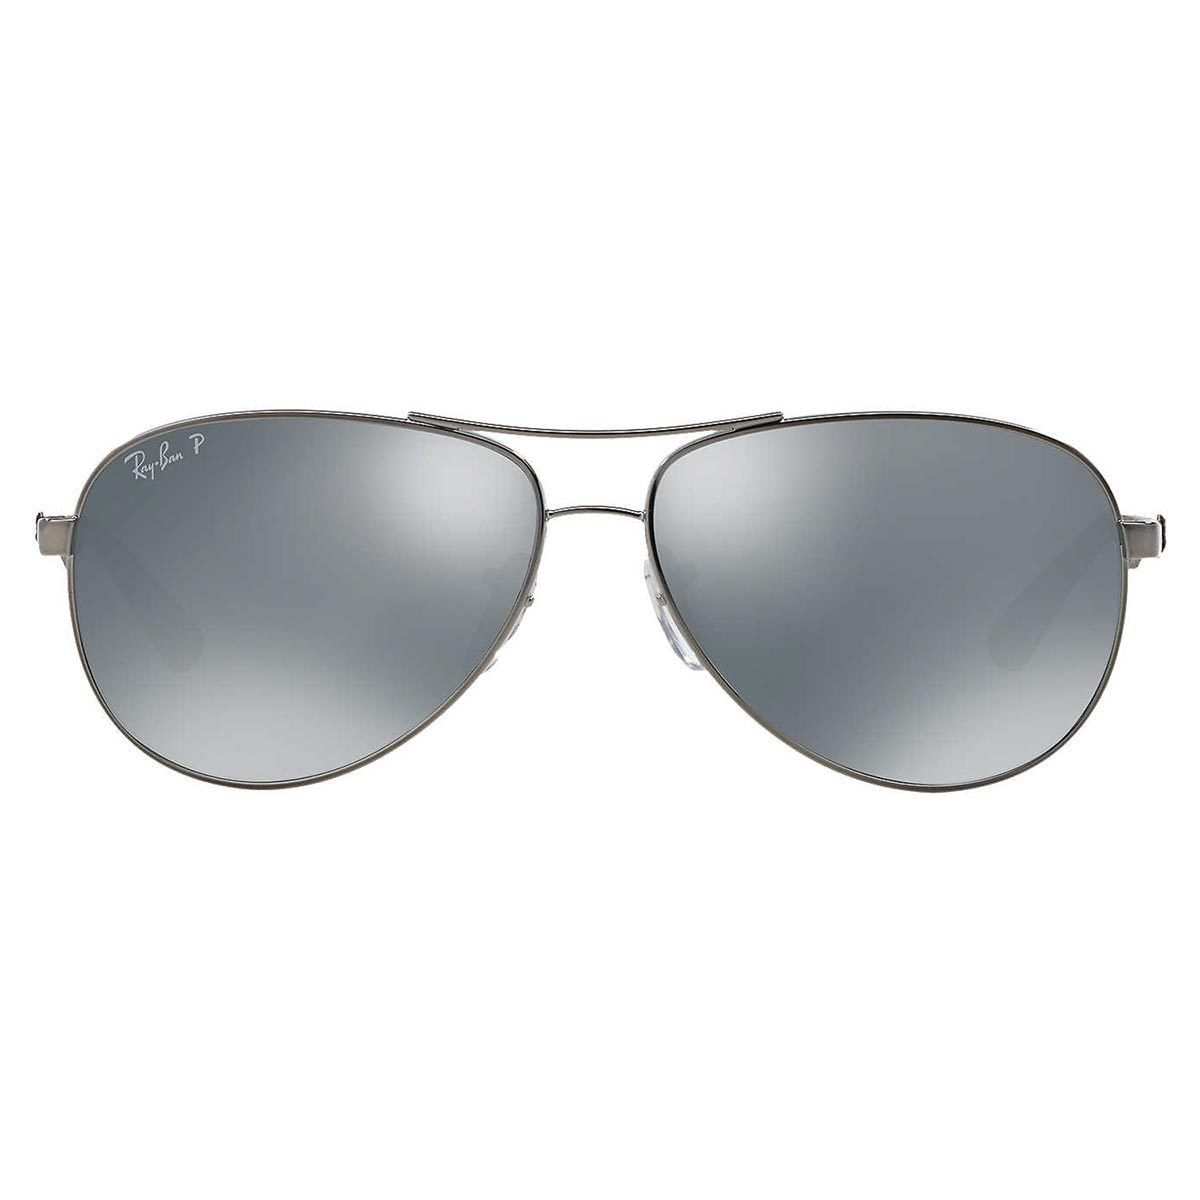 278f0e61c4a Shop Ray-Ban Men s RB8313 Gunmetal Metal Pilot Polarized Sunglasses - Free  Shipping Today - Overstock - 10481976